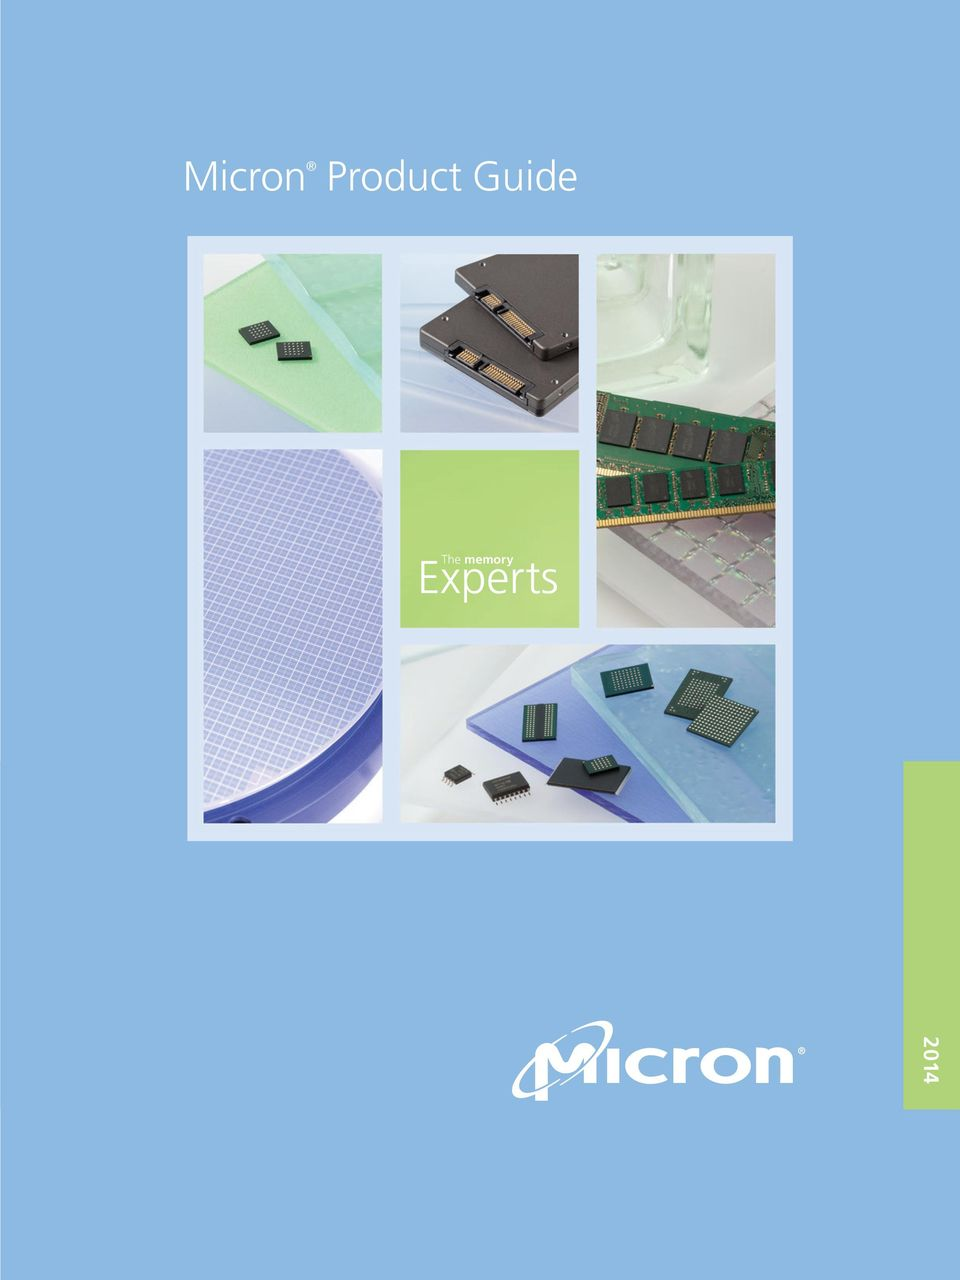 Micron Product Guide  The memory  Experts - PDF